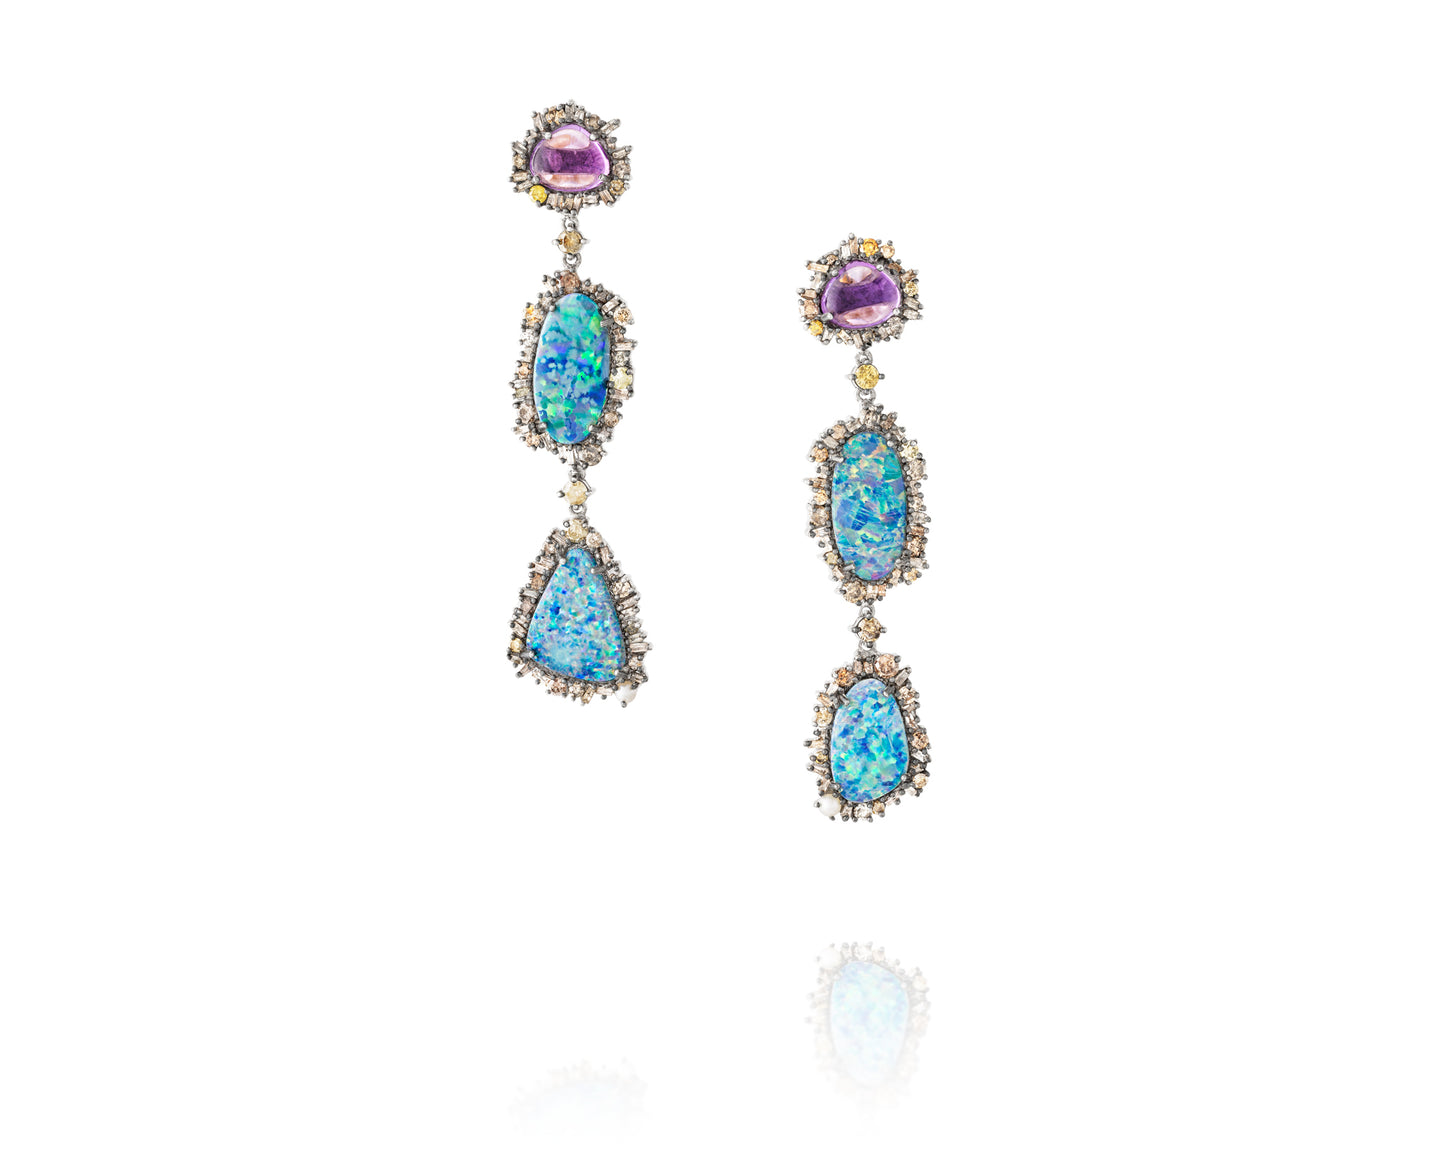 5.6ct Diamond Drop Earrings with Amethyst and Boulder Opal